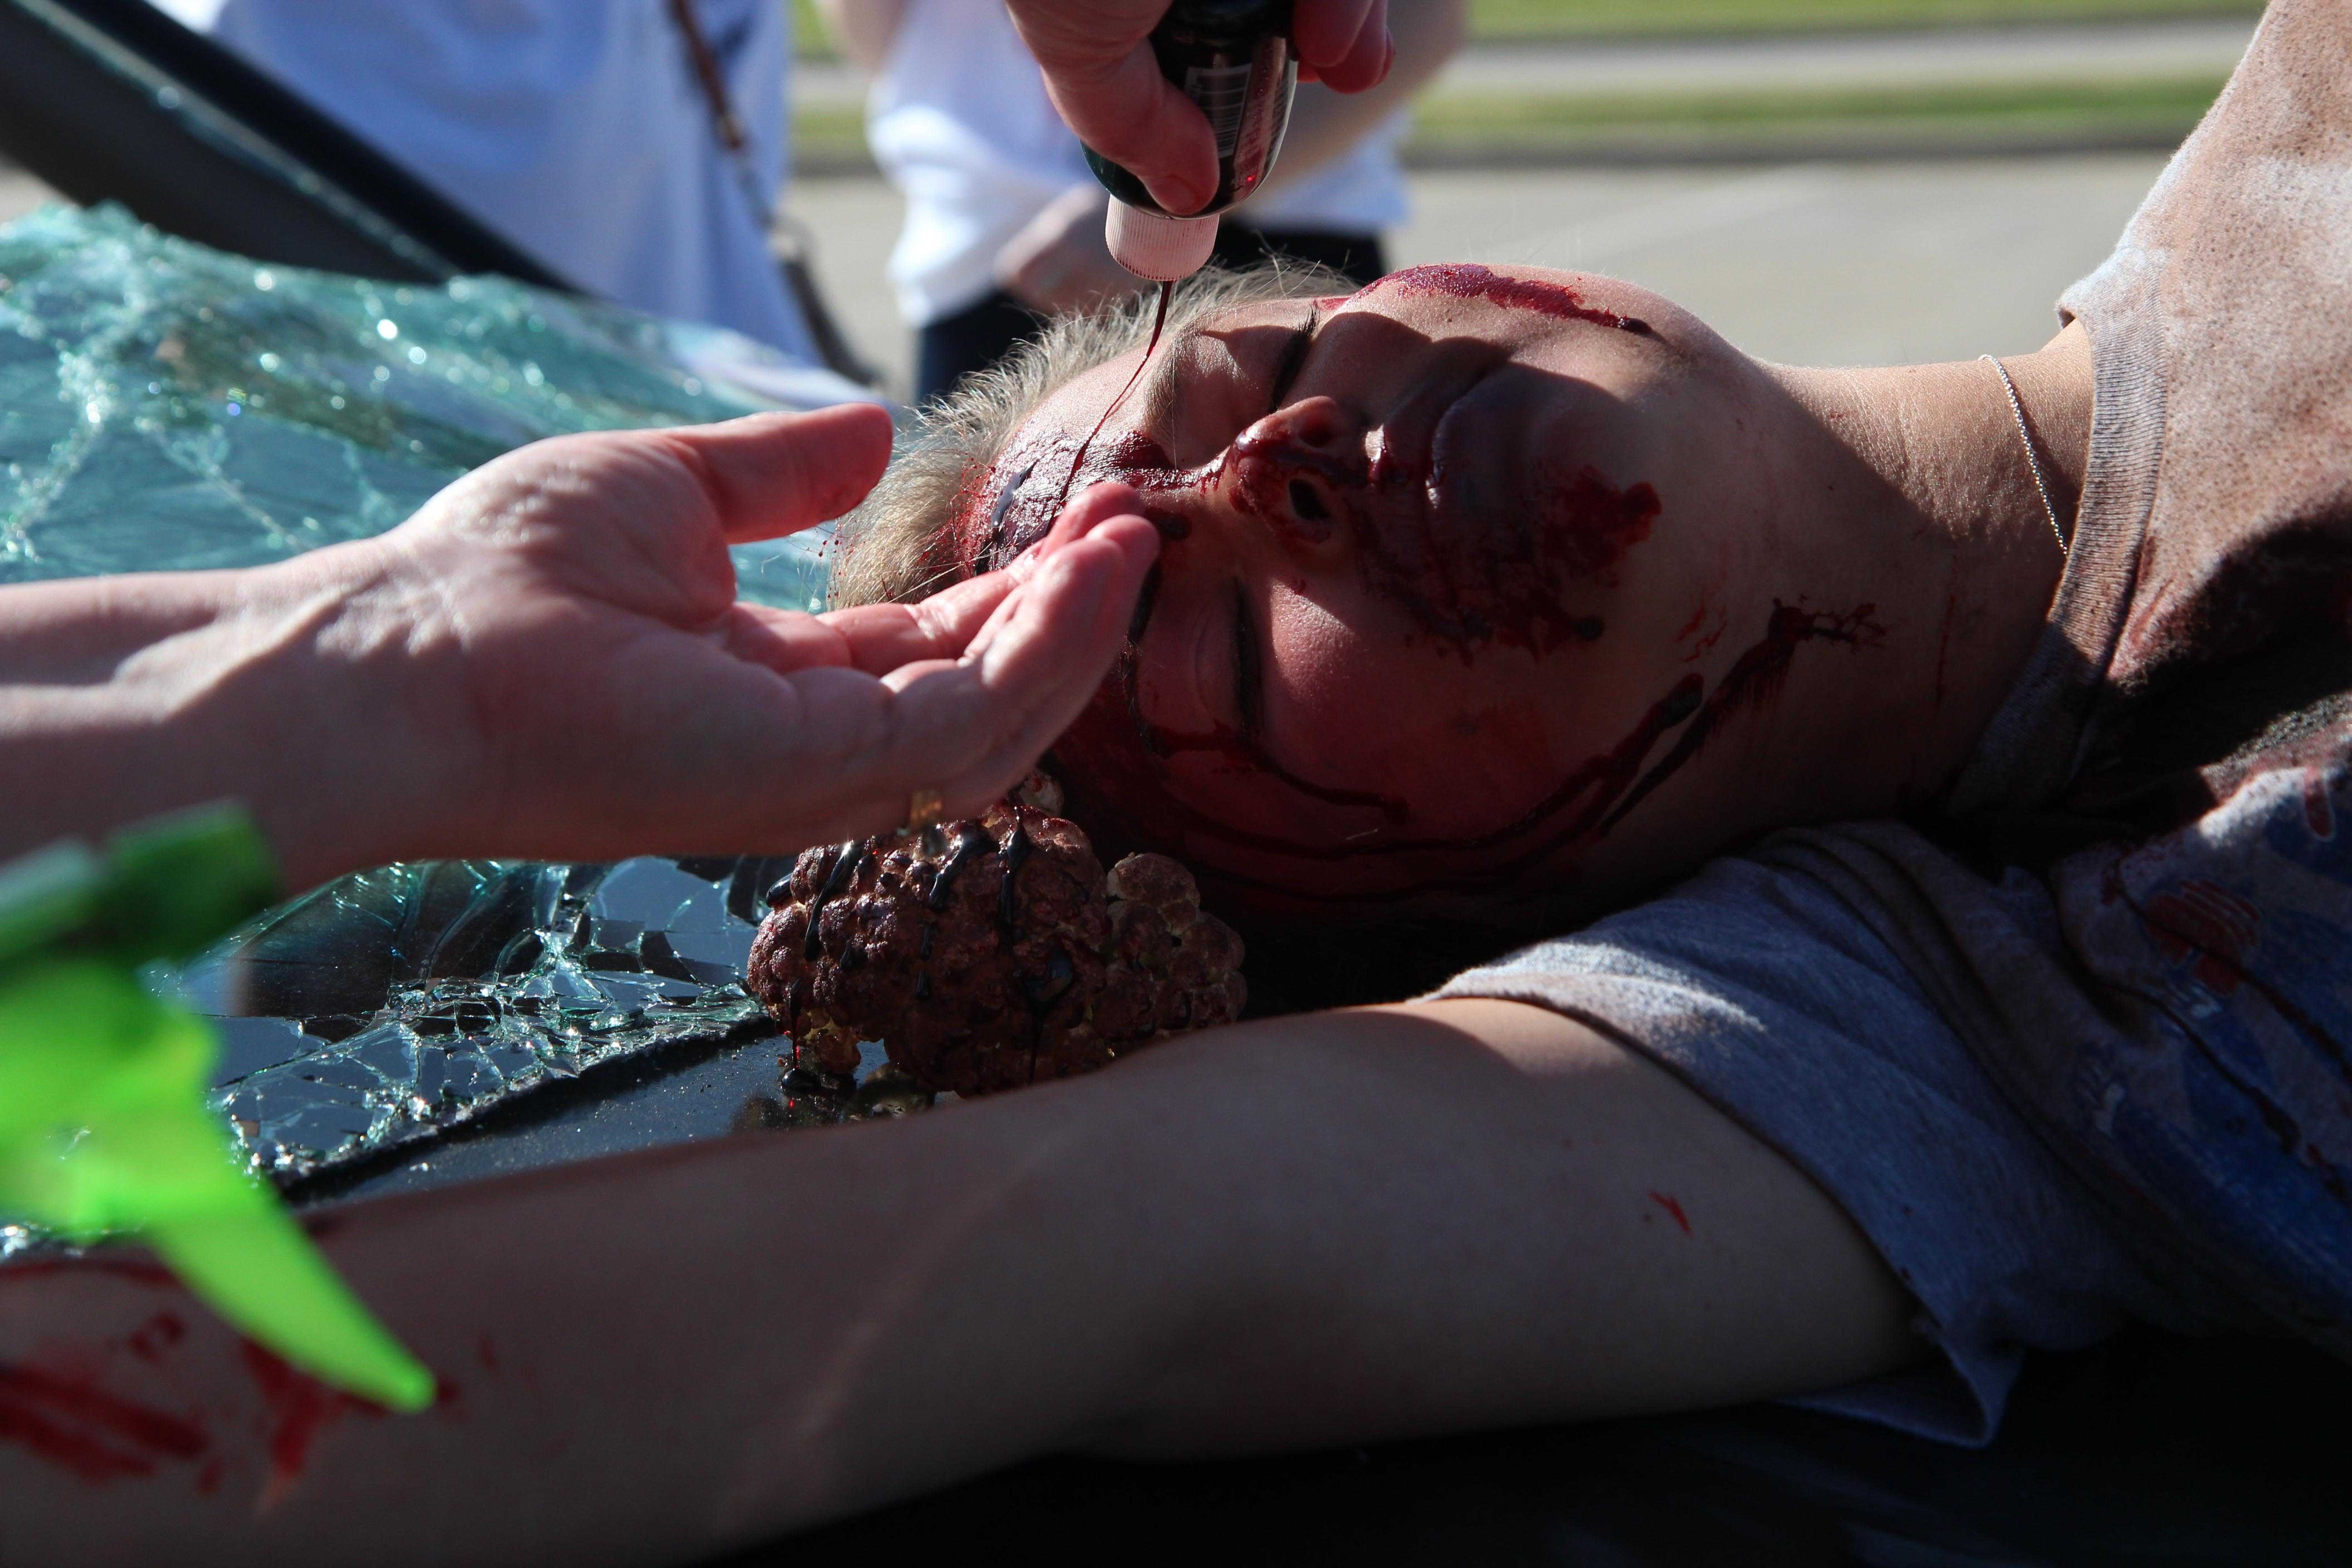 Shortly+before+students+finished+watching+the+video+inside%2C+final+touch+ups+were+done+on+the+makeup+of+the+crash+victims.